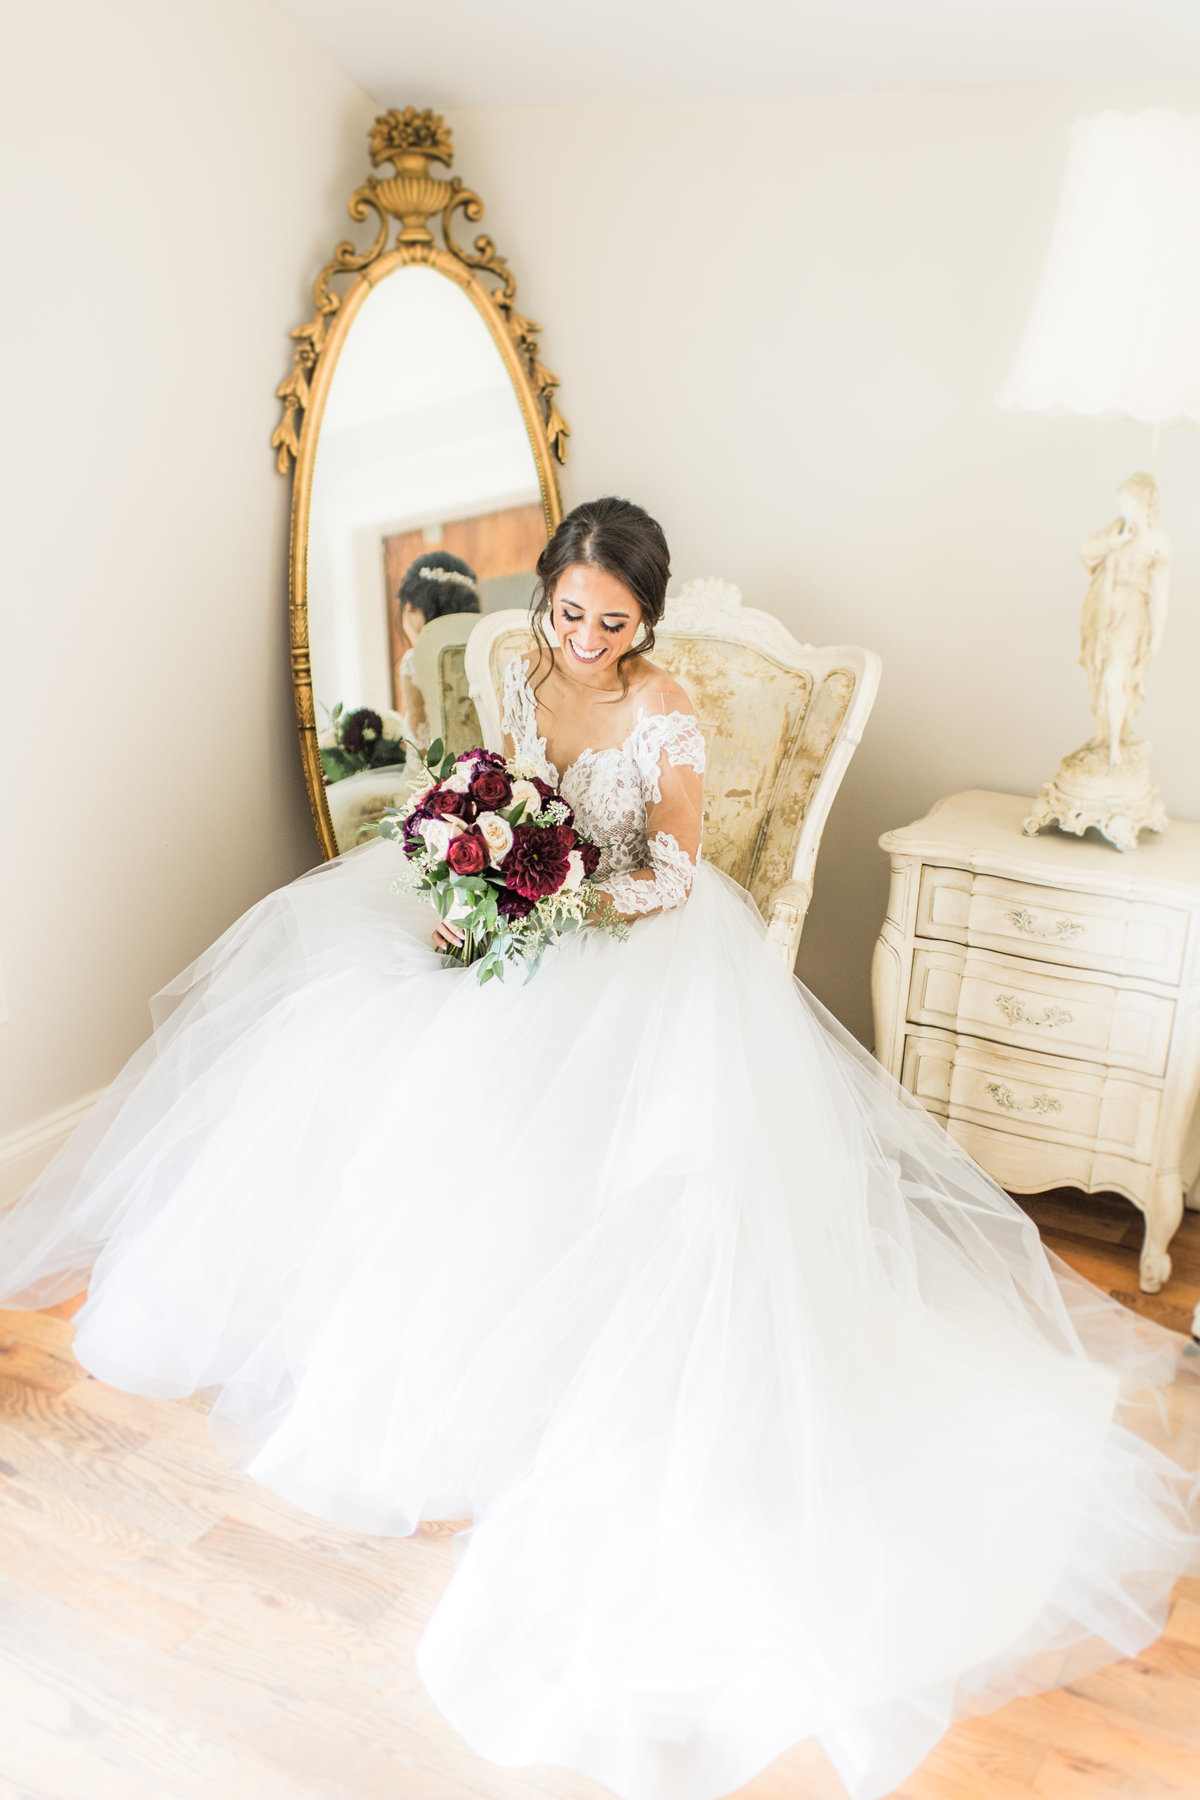 Bride in Hayley Paige wedding dress looking at her white and burgundy bouquet